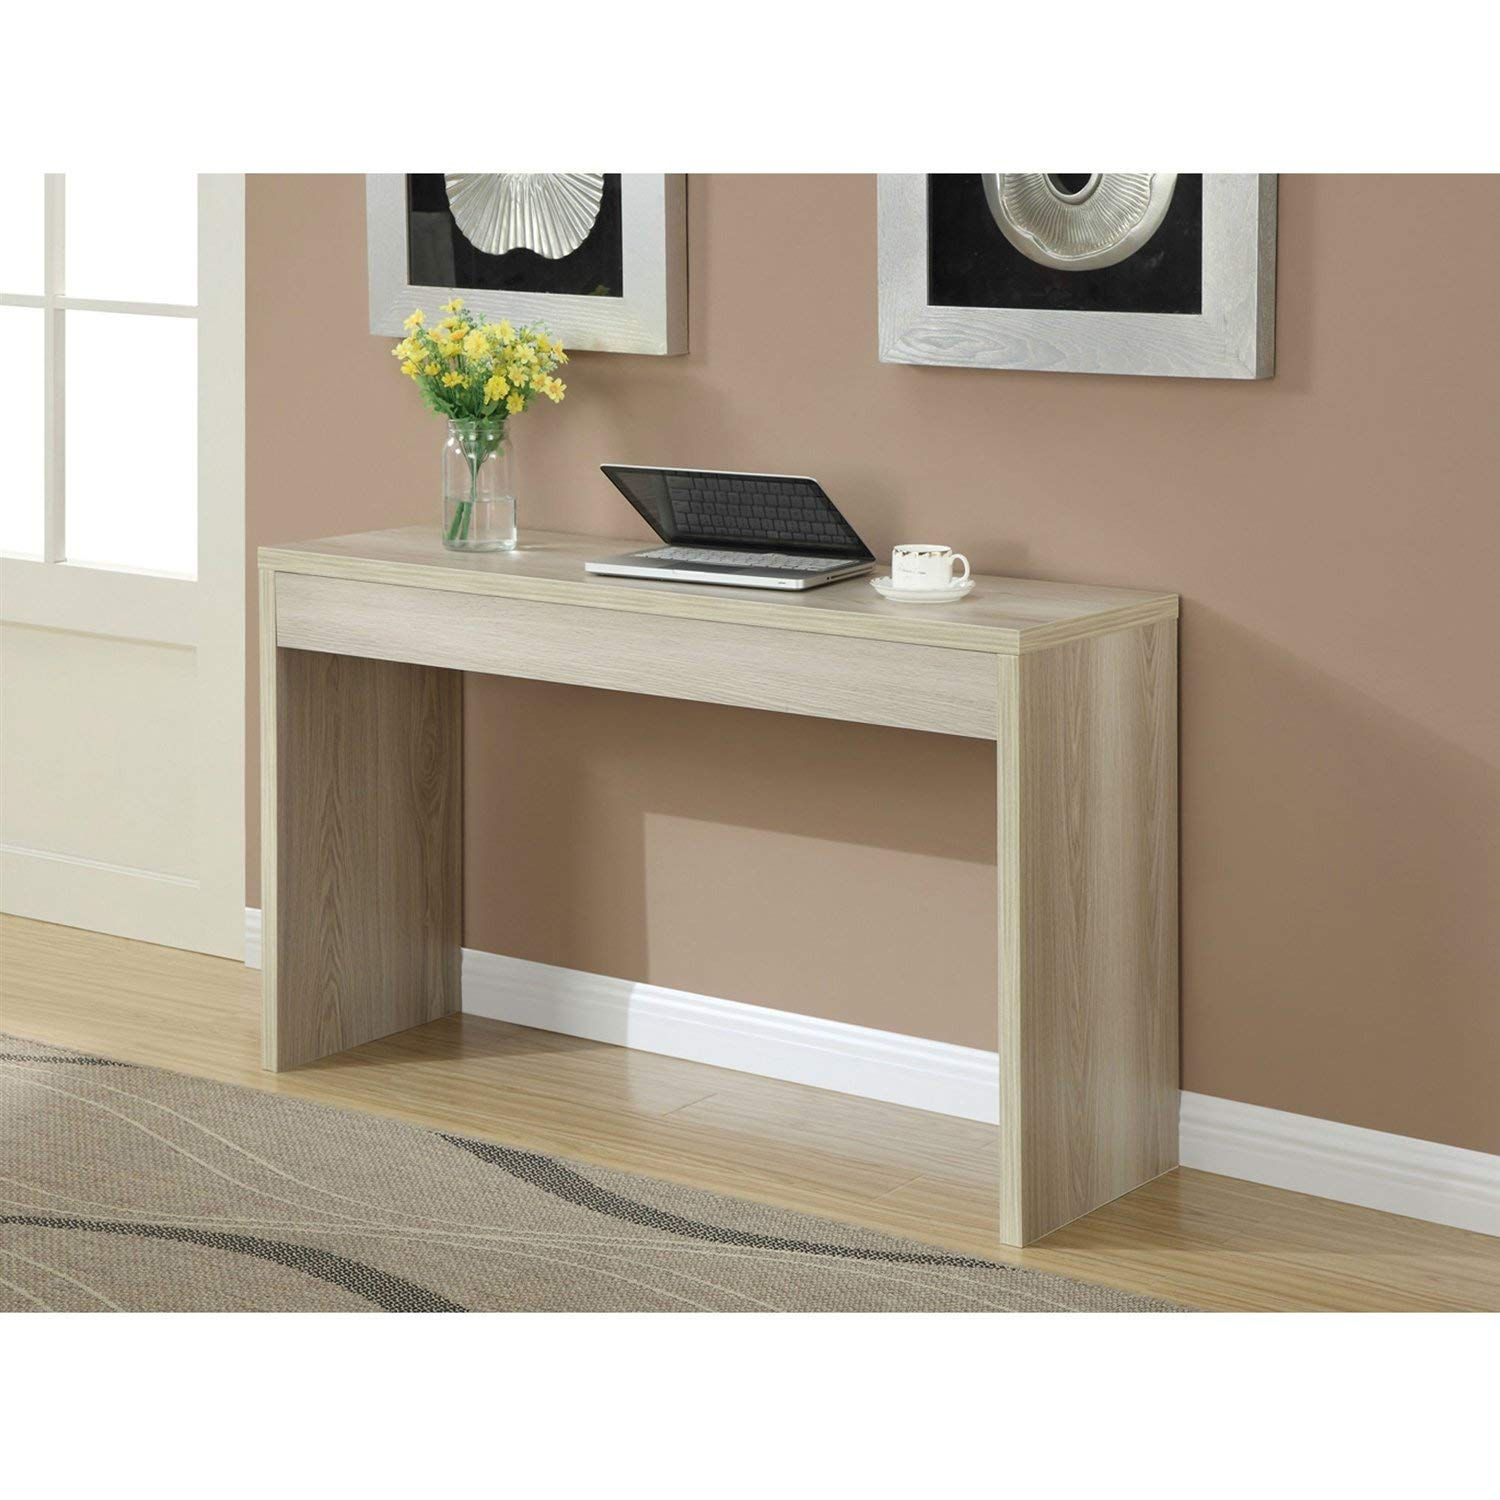 StarSun Depot Contemporary Sofa Table Console Table in Weathered White Wood Finish